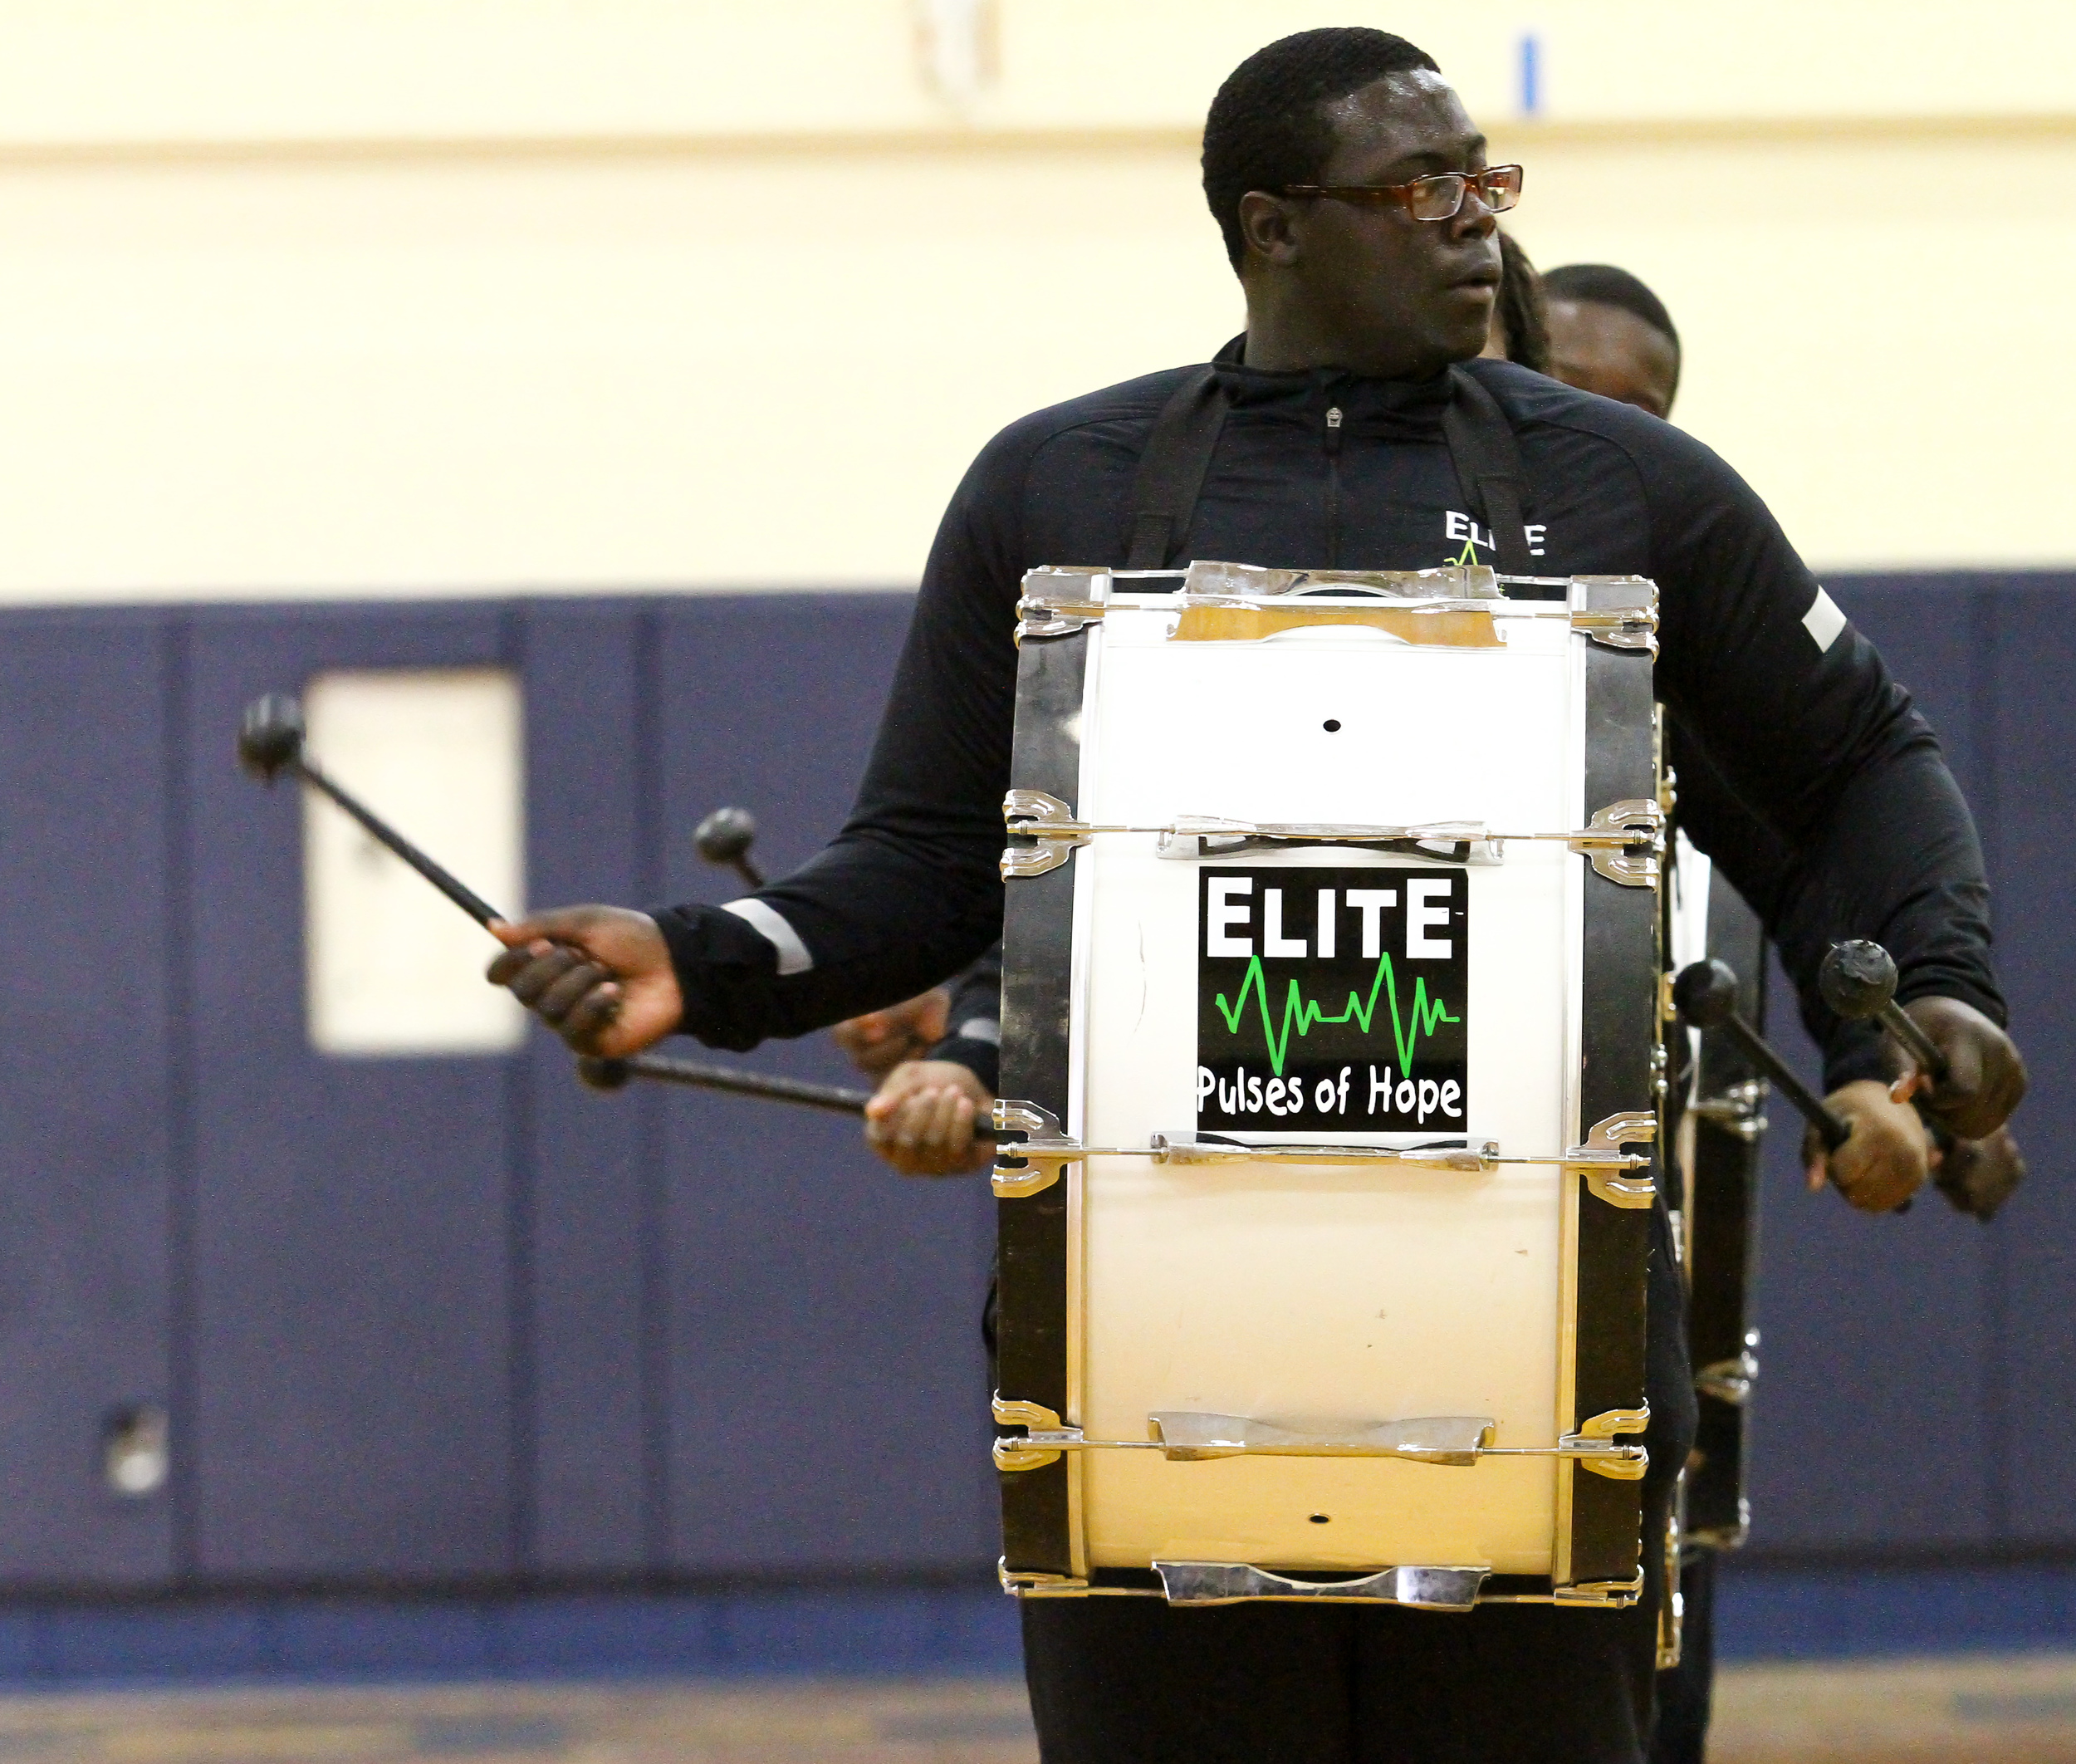 One of the three Pulses of Hope Base drummer performs before the start of the King City Monarchs vs Midwest Flames game at Woodruff High school in Peoria, IL.